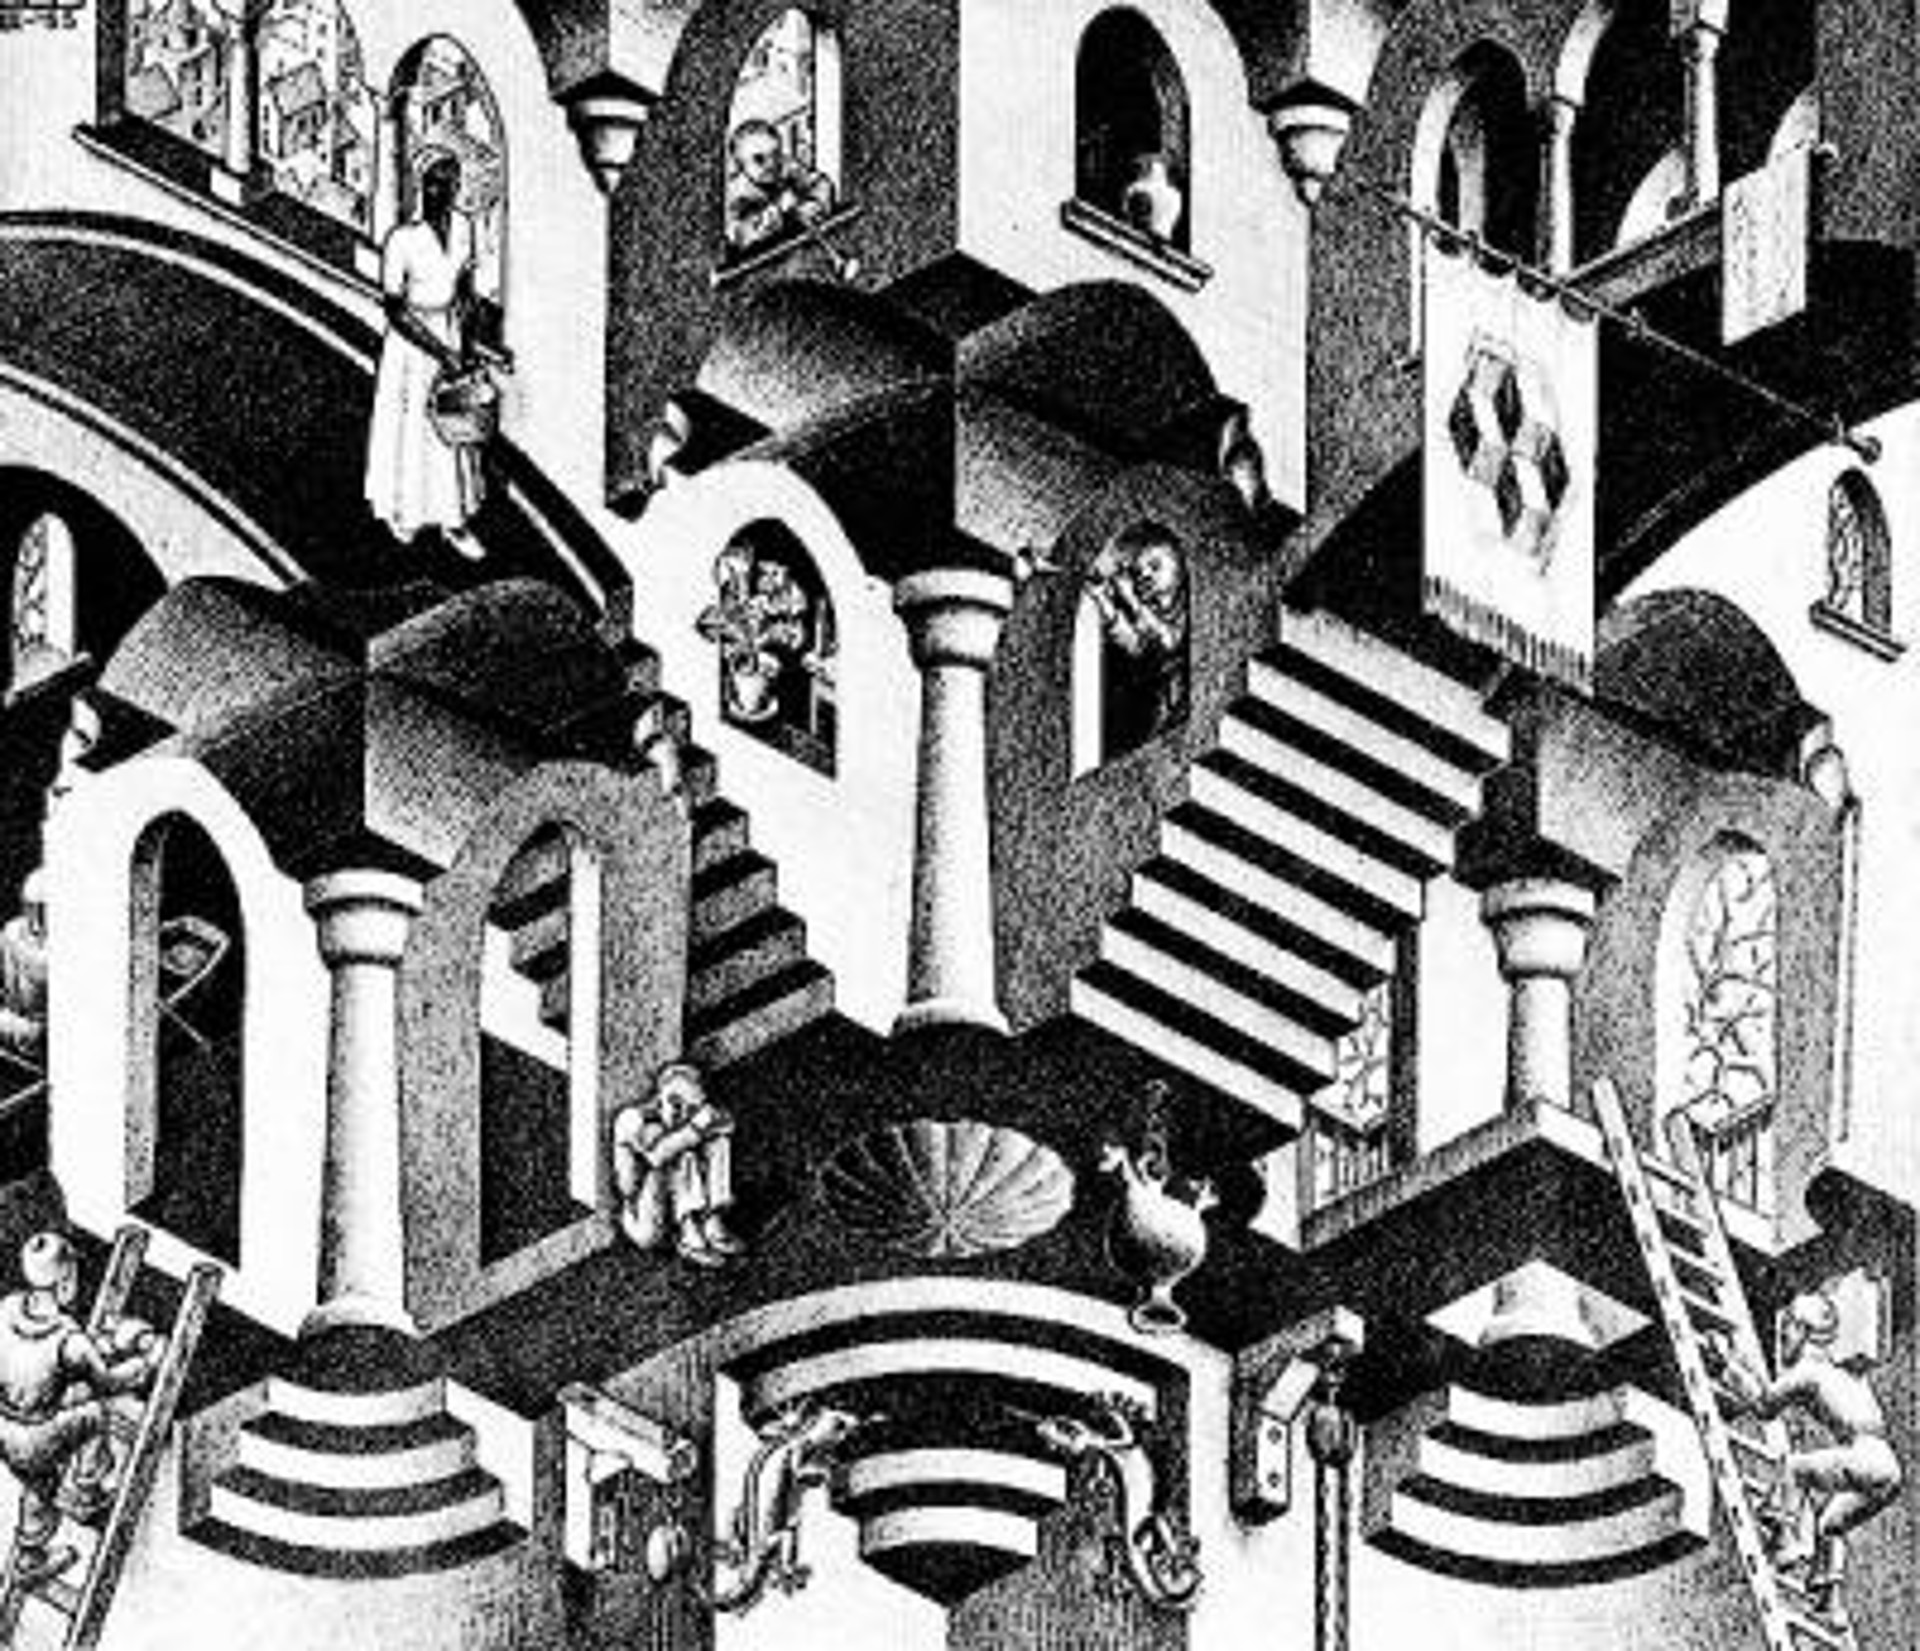 Concave and Convex by M.C. Escher